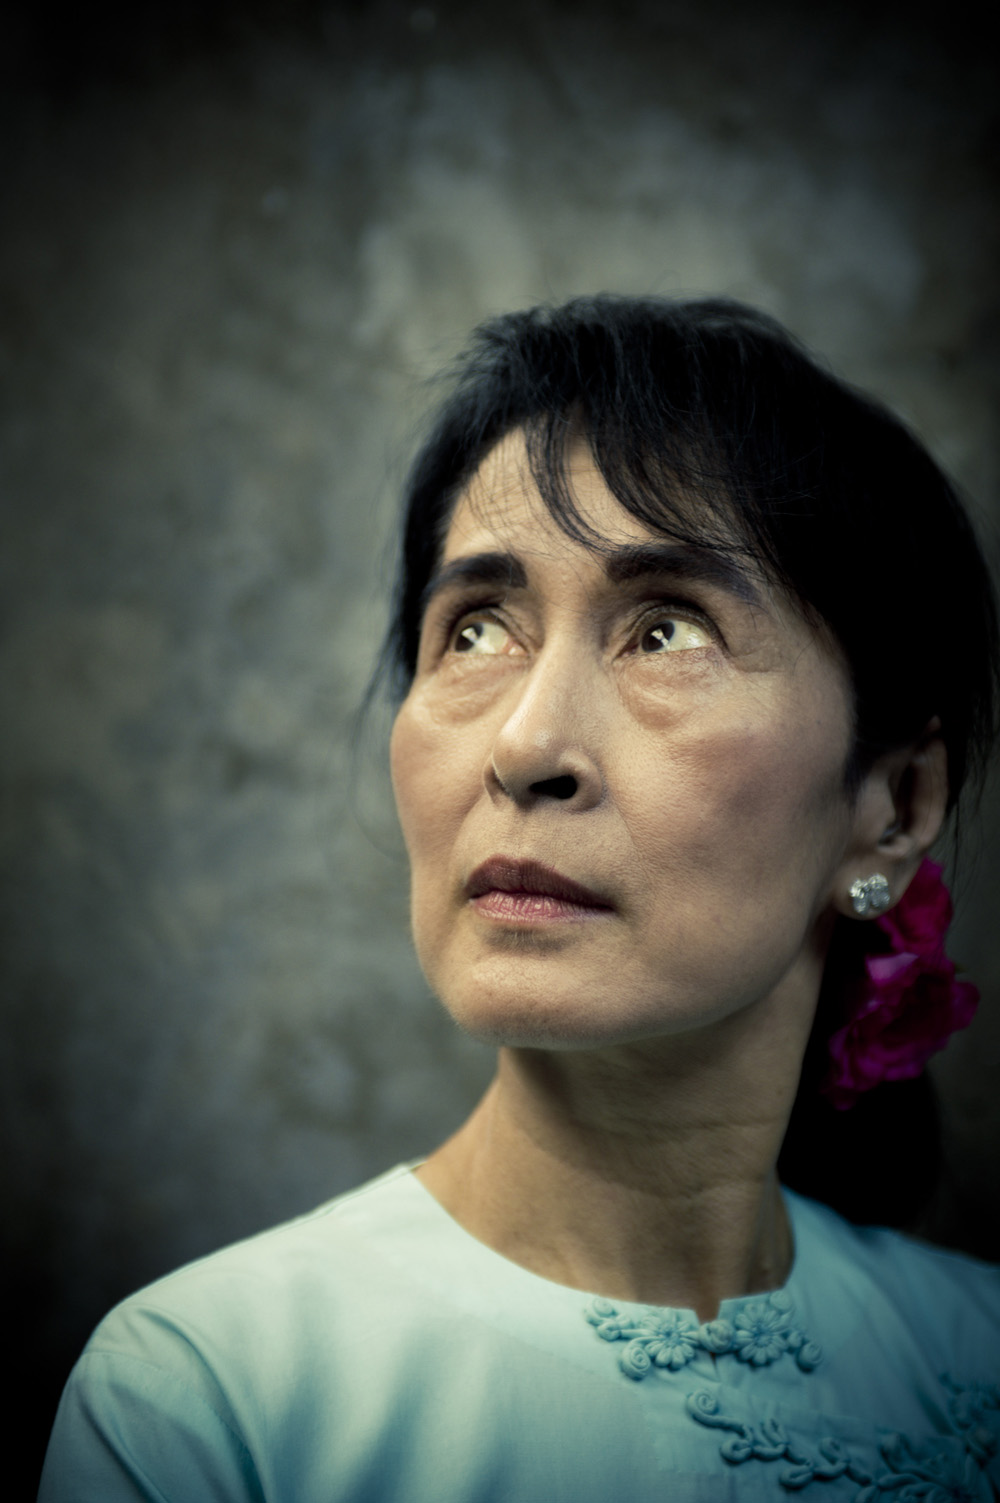 aung san suu kyi and sadat Education activist malala yousafzai criticized myanmar's de facto leader aung san suu kyi for her ongoing silence over the violence that has led to tens of.